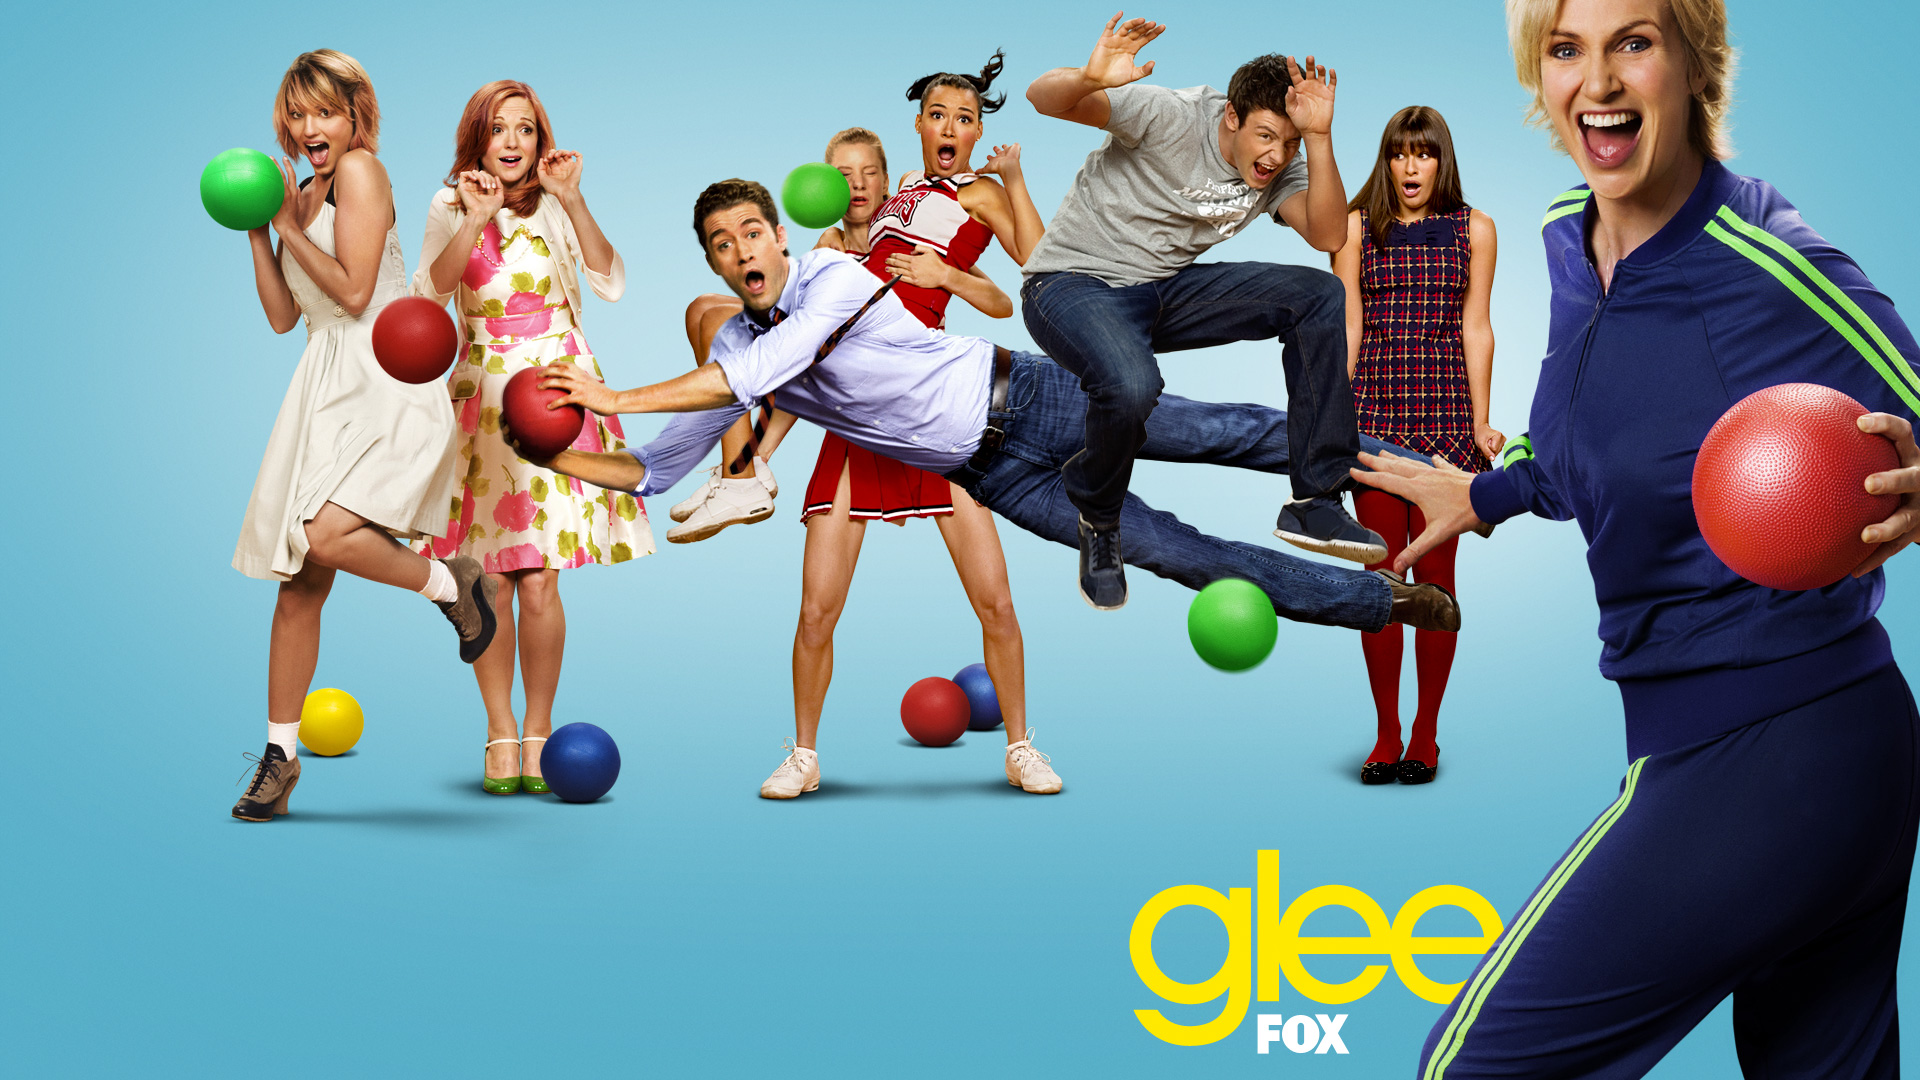 Glee hd wallpapers for desktop download glee 2015 voltagebd